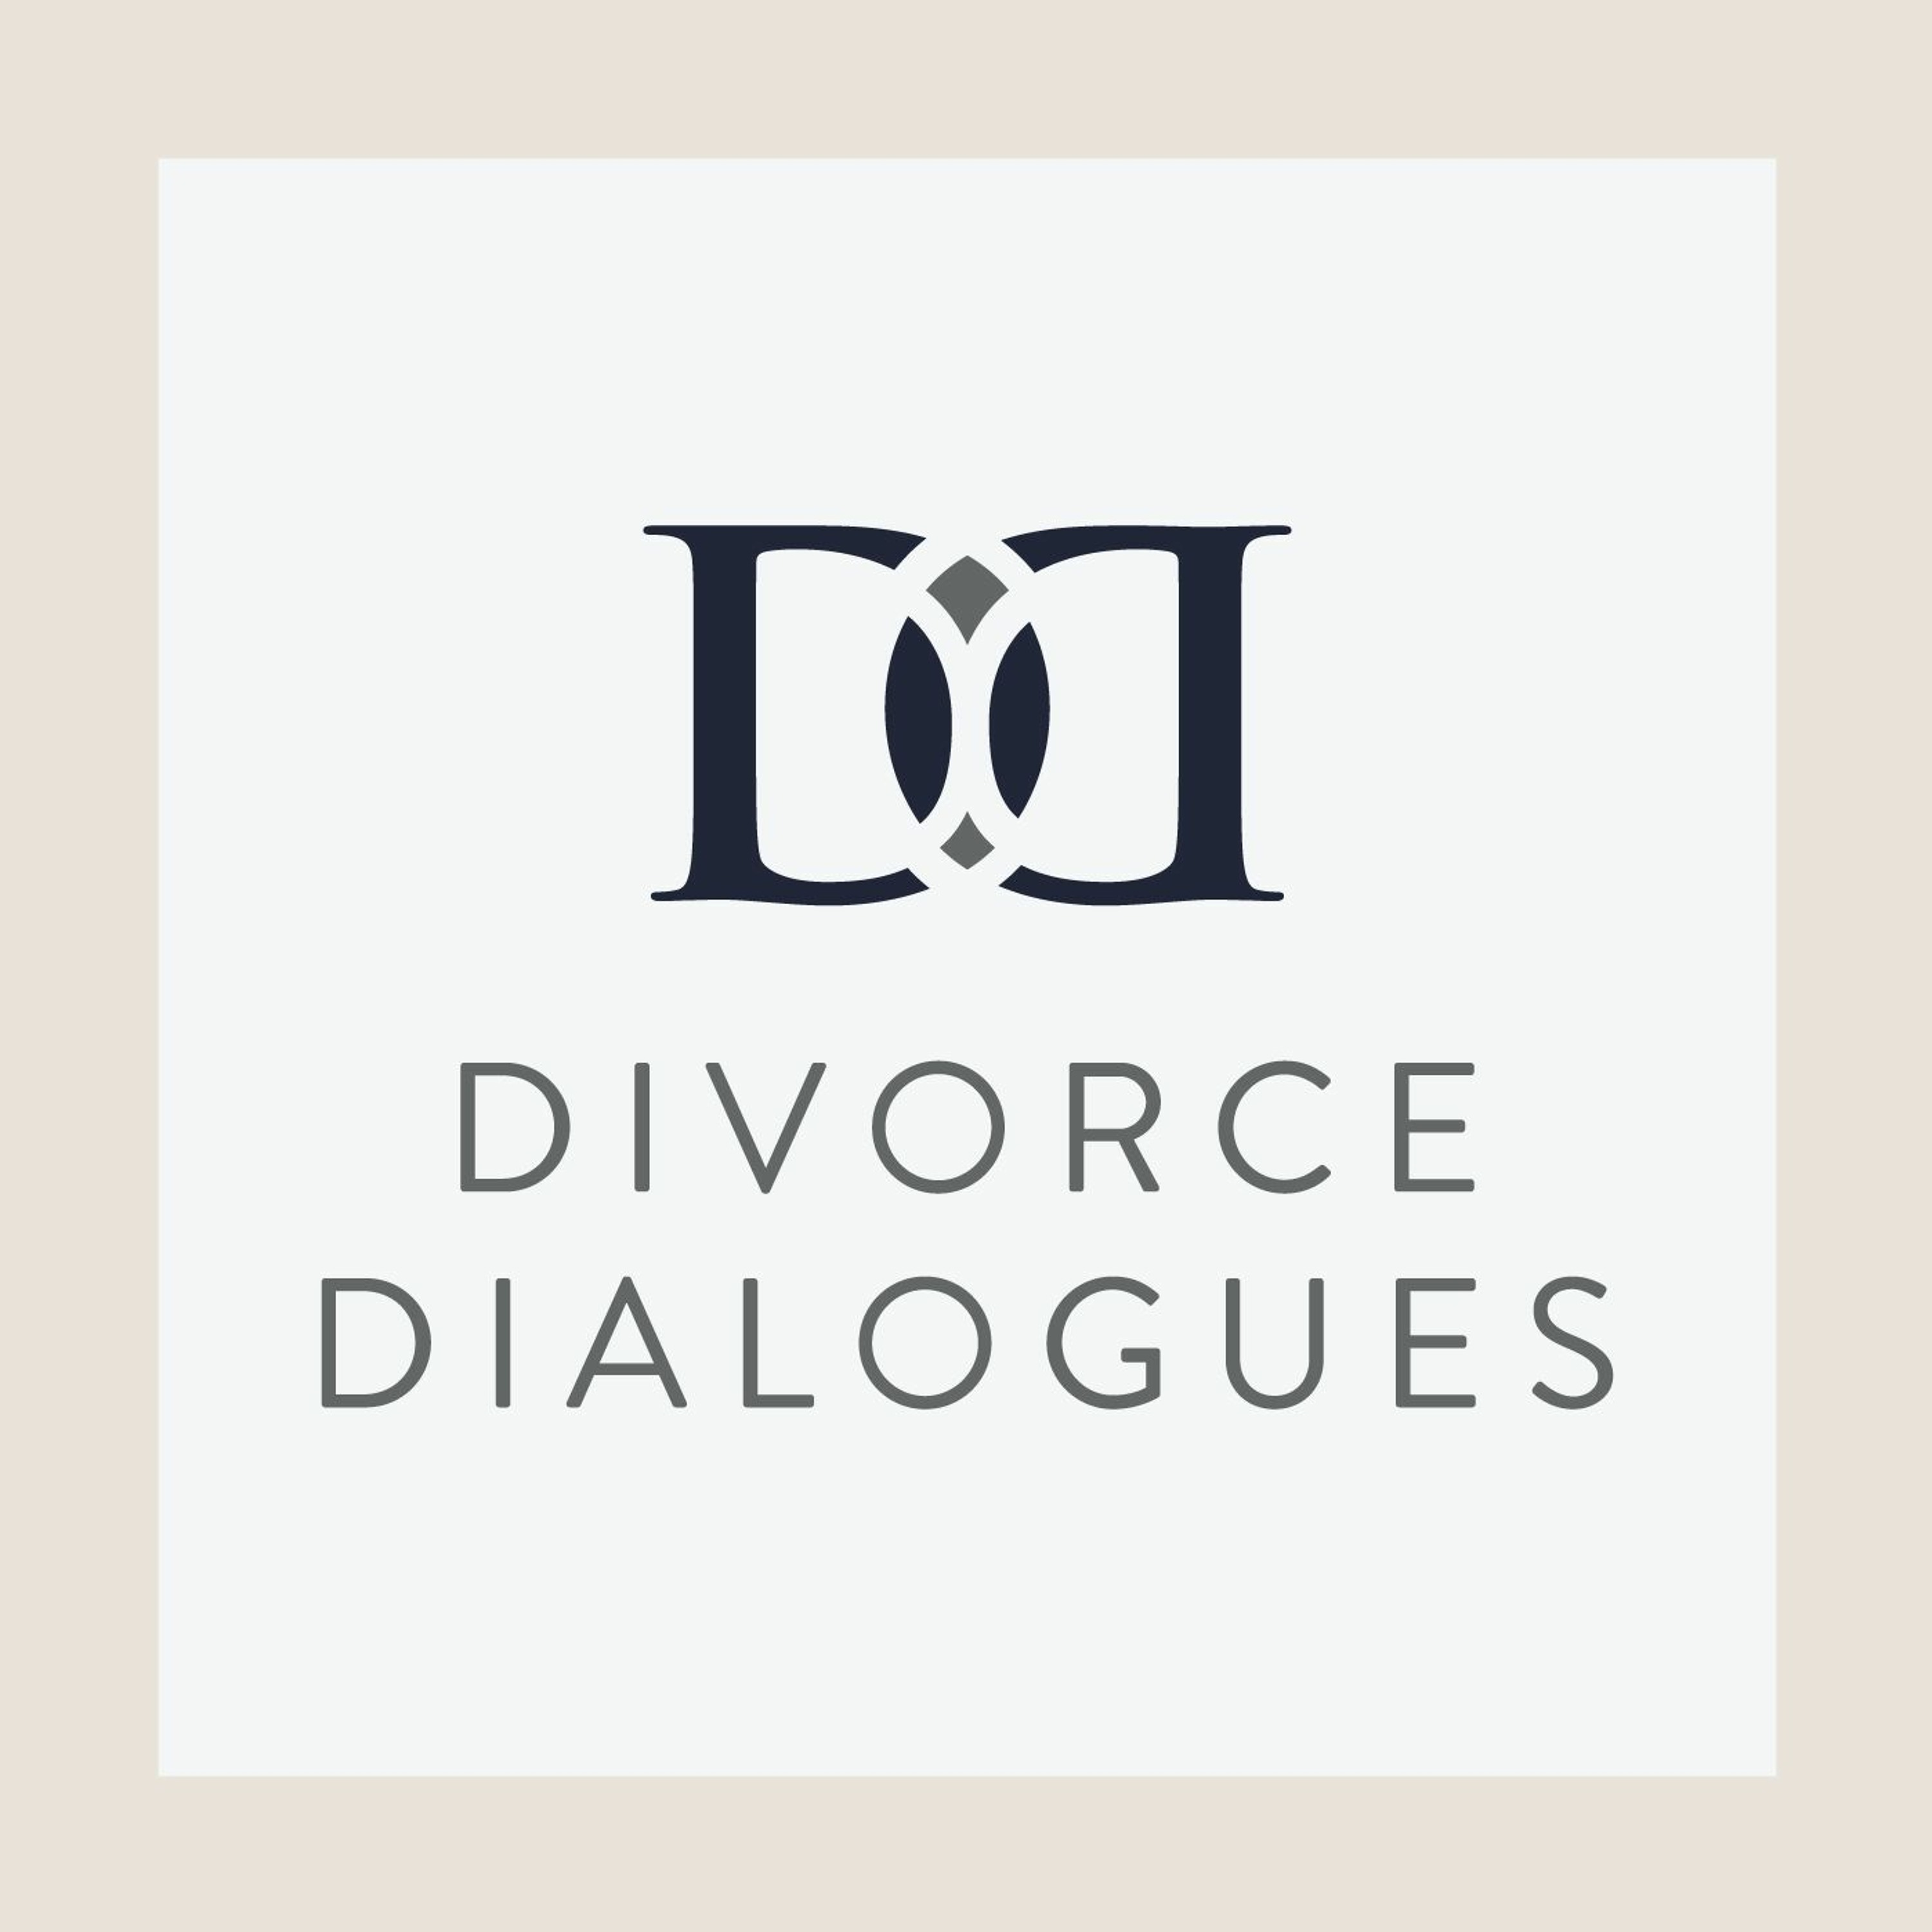 Divorce Dialogues - Allegations of Child Abuse and Neglect During Divorce with Allison Williams